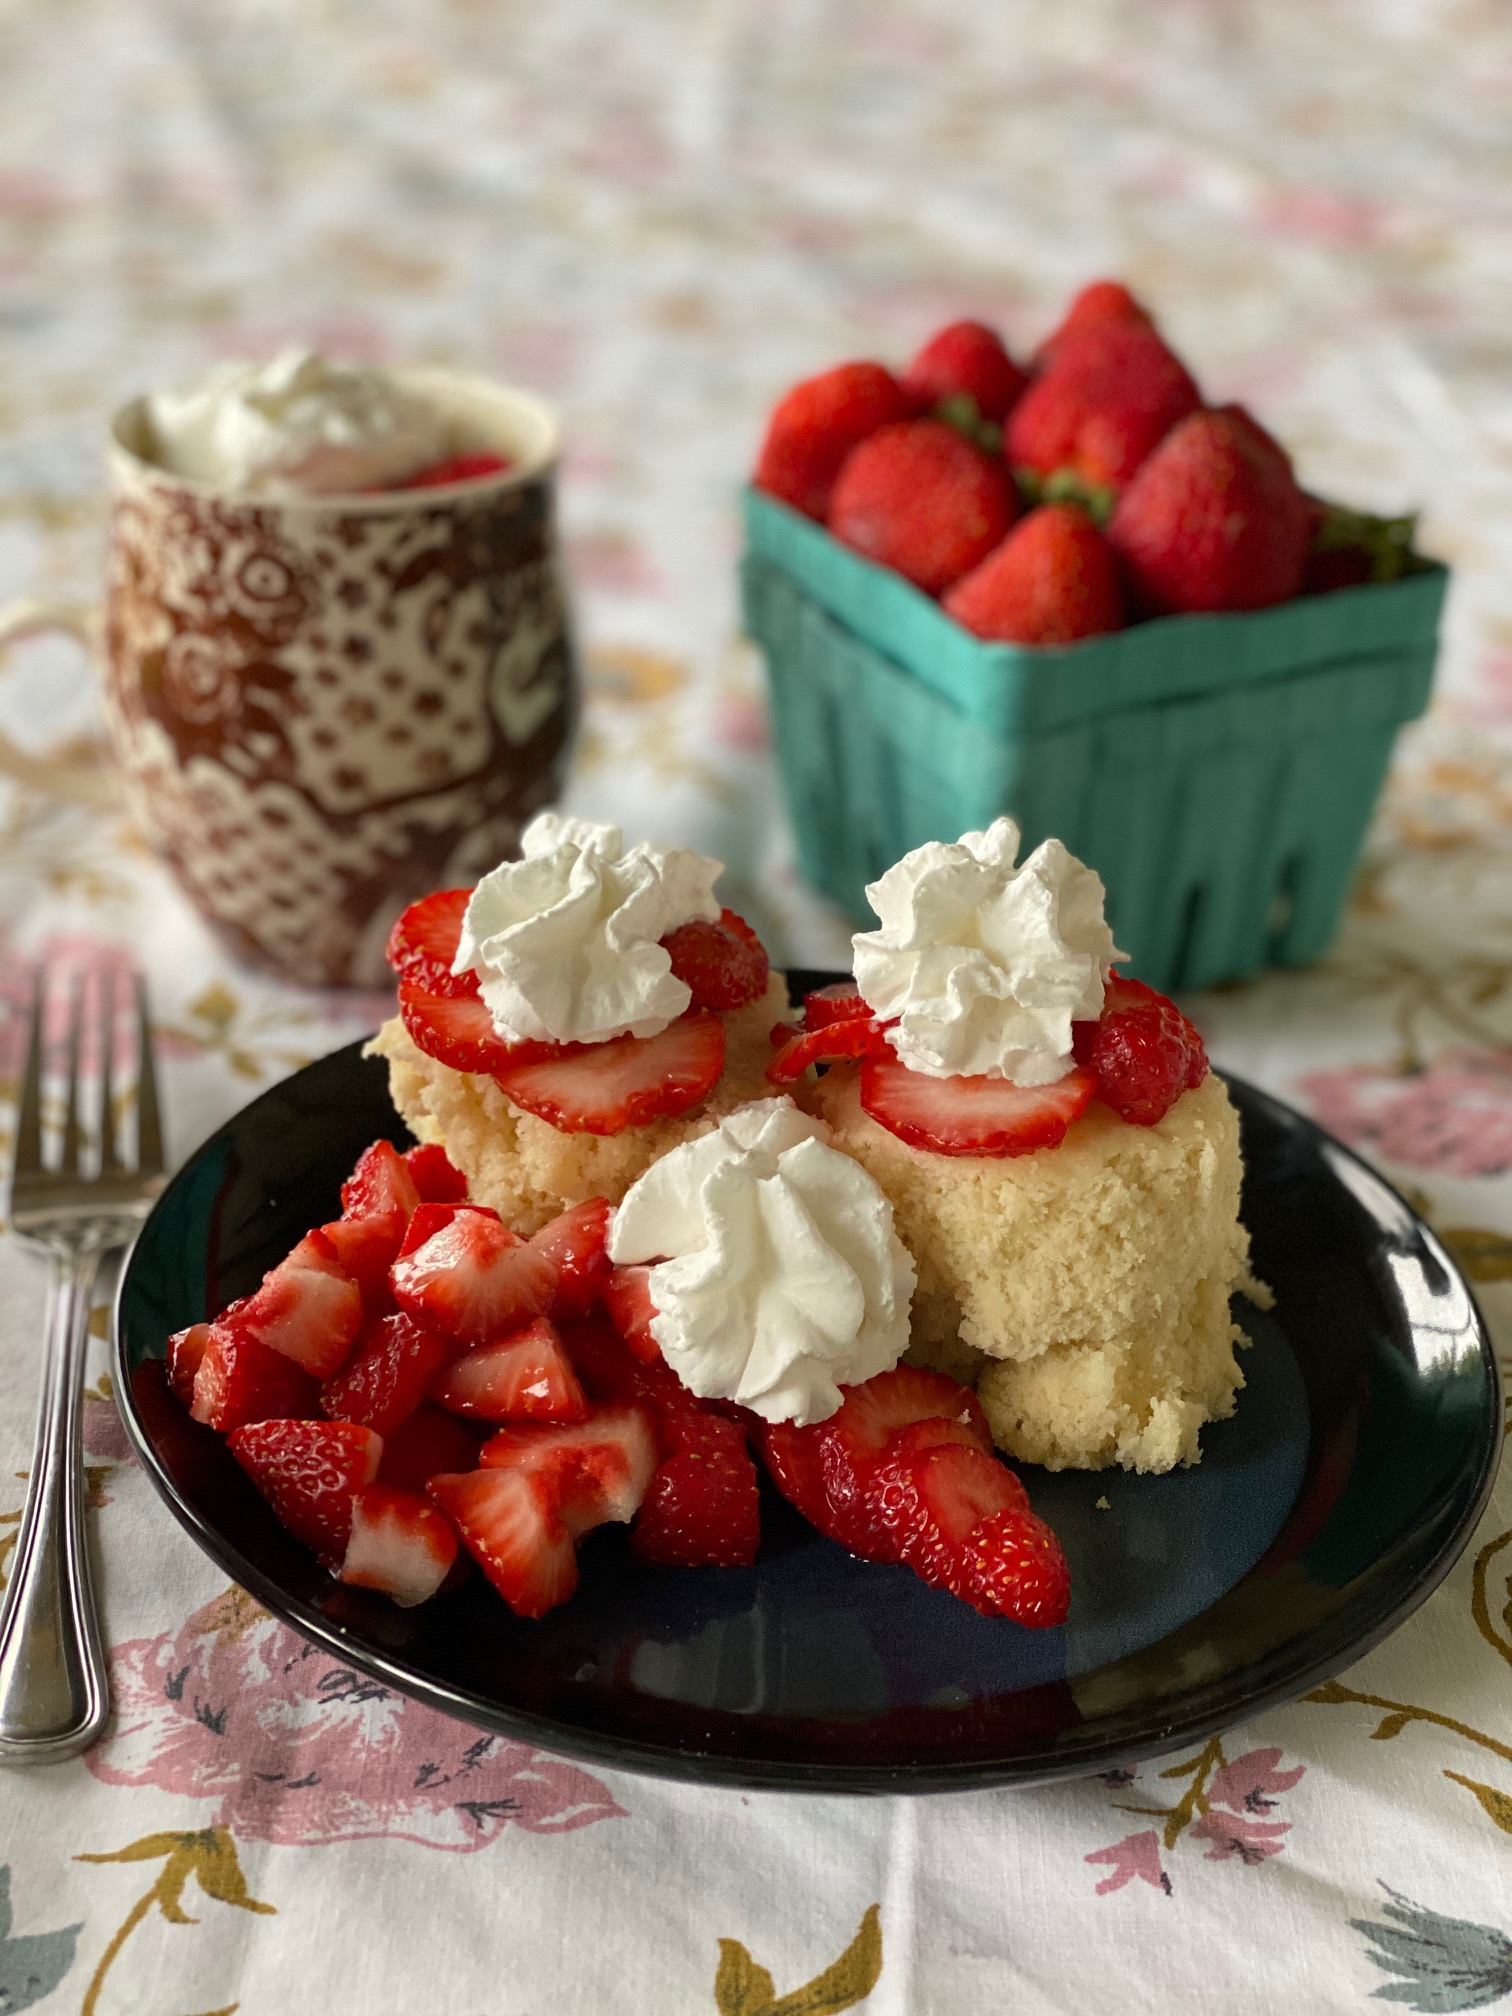 Microwavable Strawberry Shortcake In A Mug Wolff S Apple House